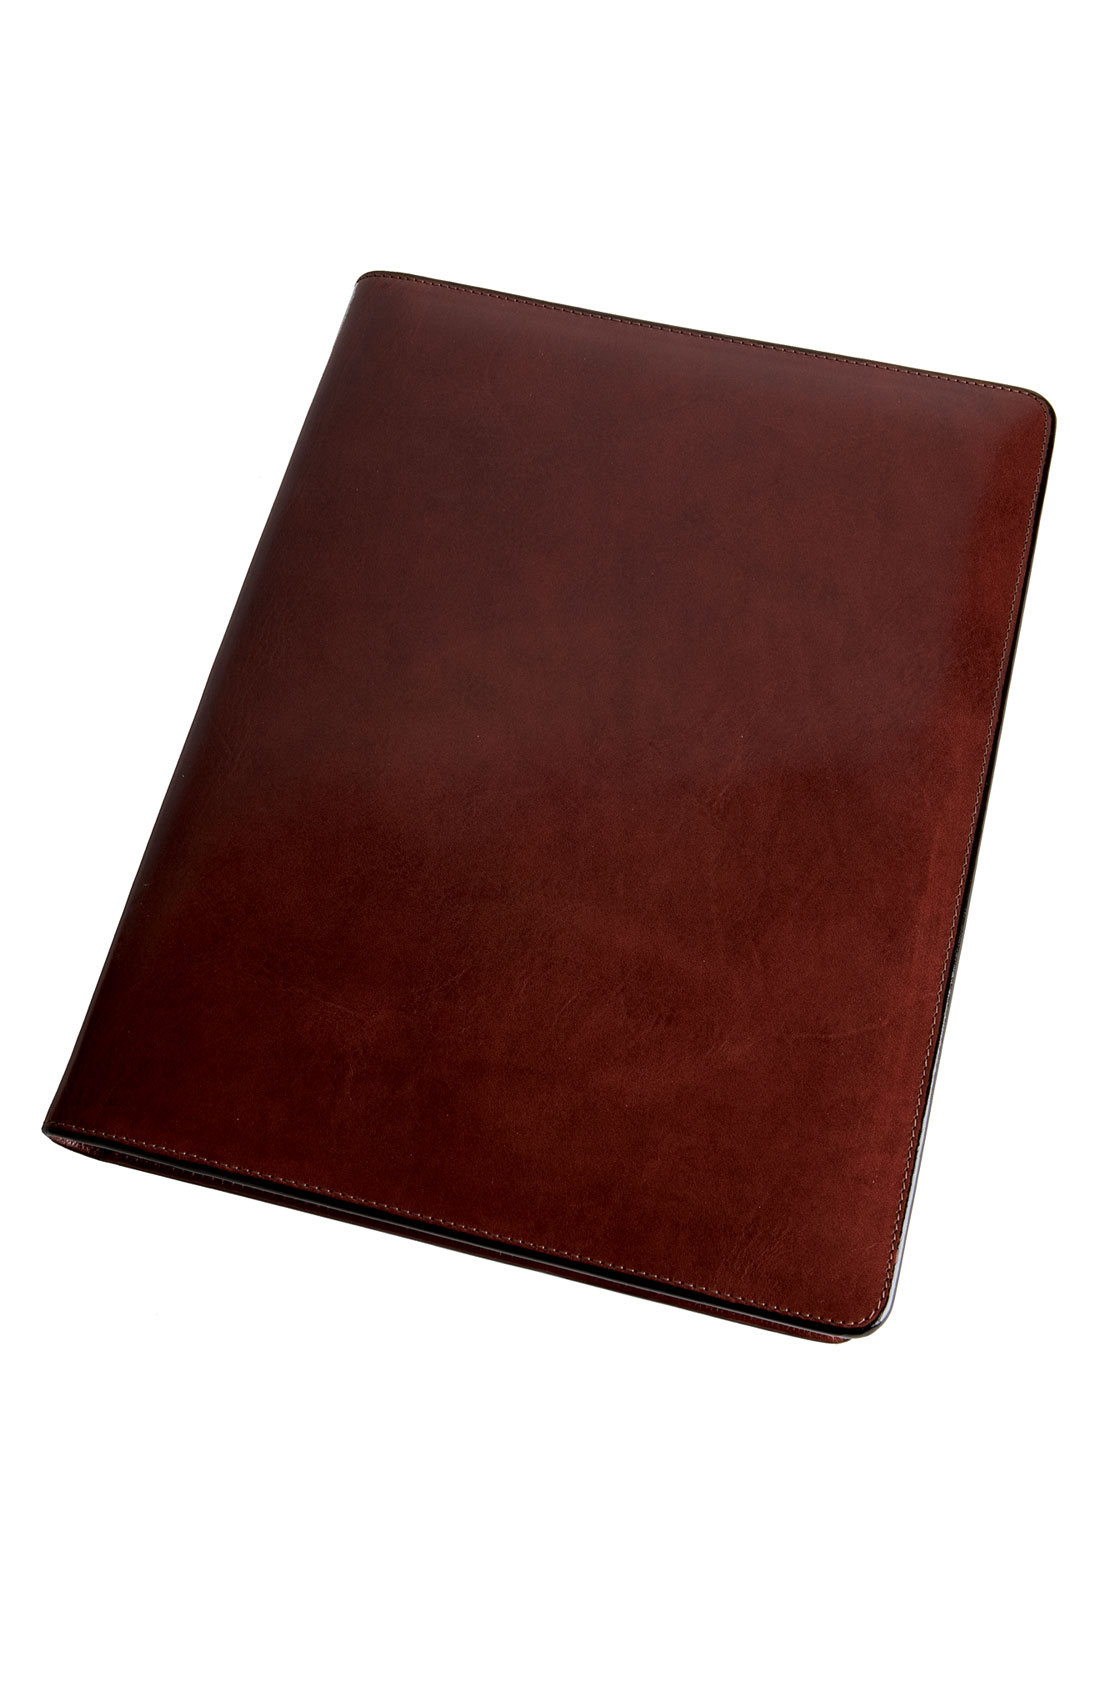 bosca leather letter pad cover in brown for men brown old With leather letter pad